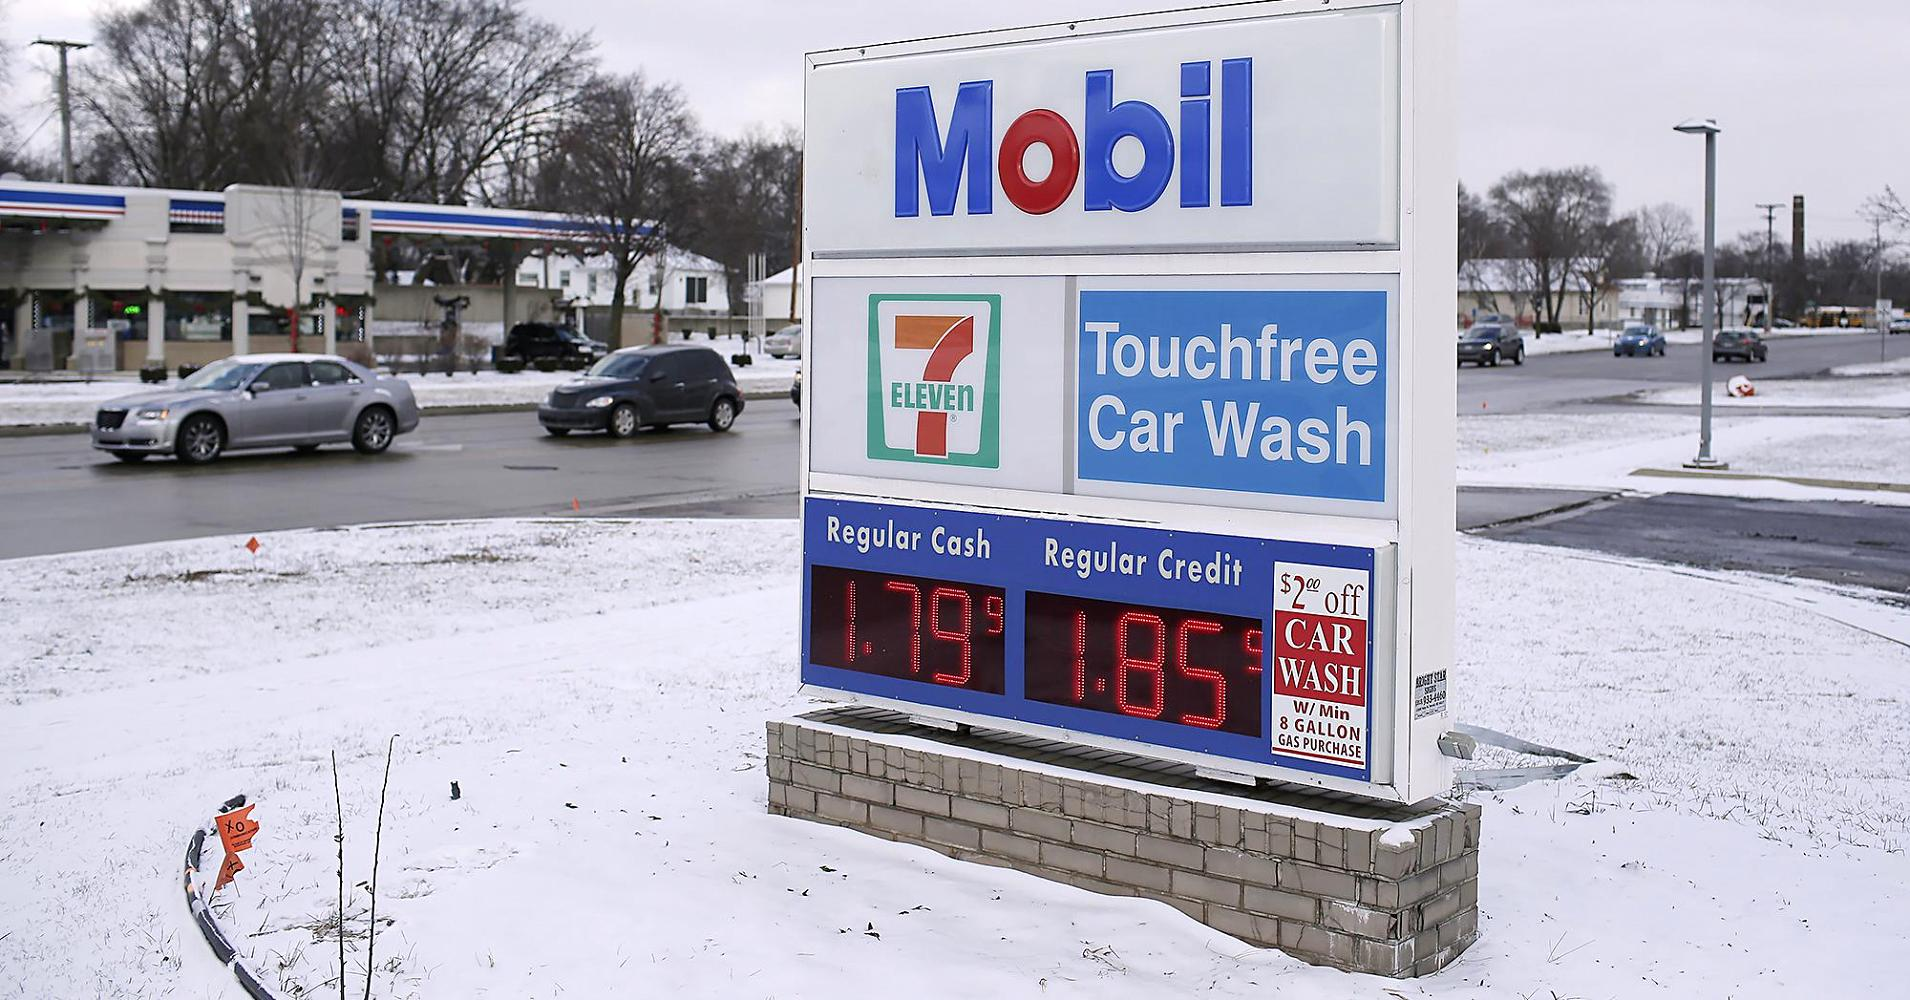 Gas prices at 20 dollars a barrel in 2016